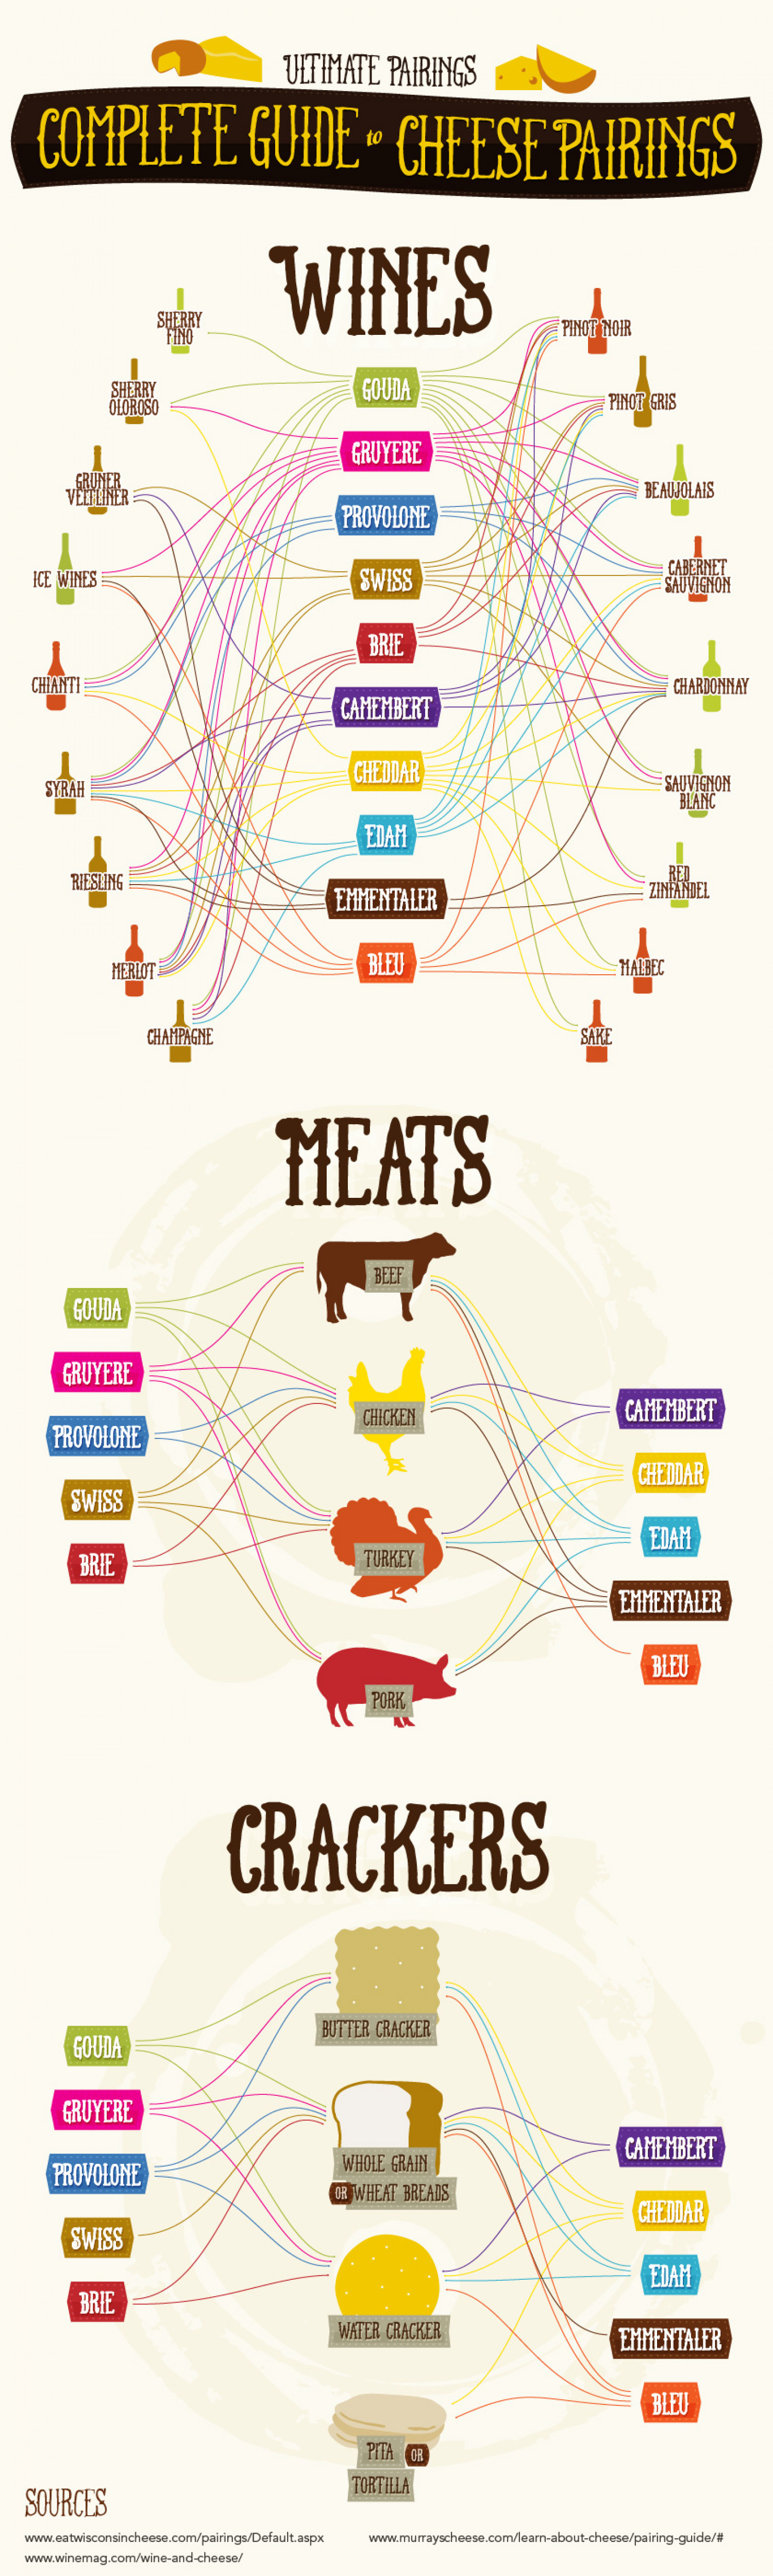 Ultimate Guide to Cheese Pairing Infographic